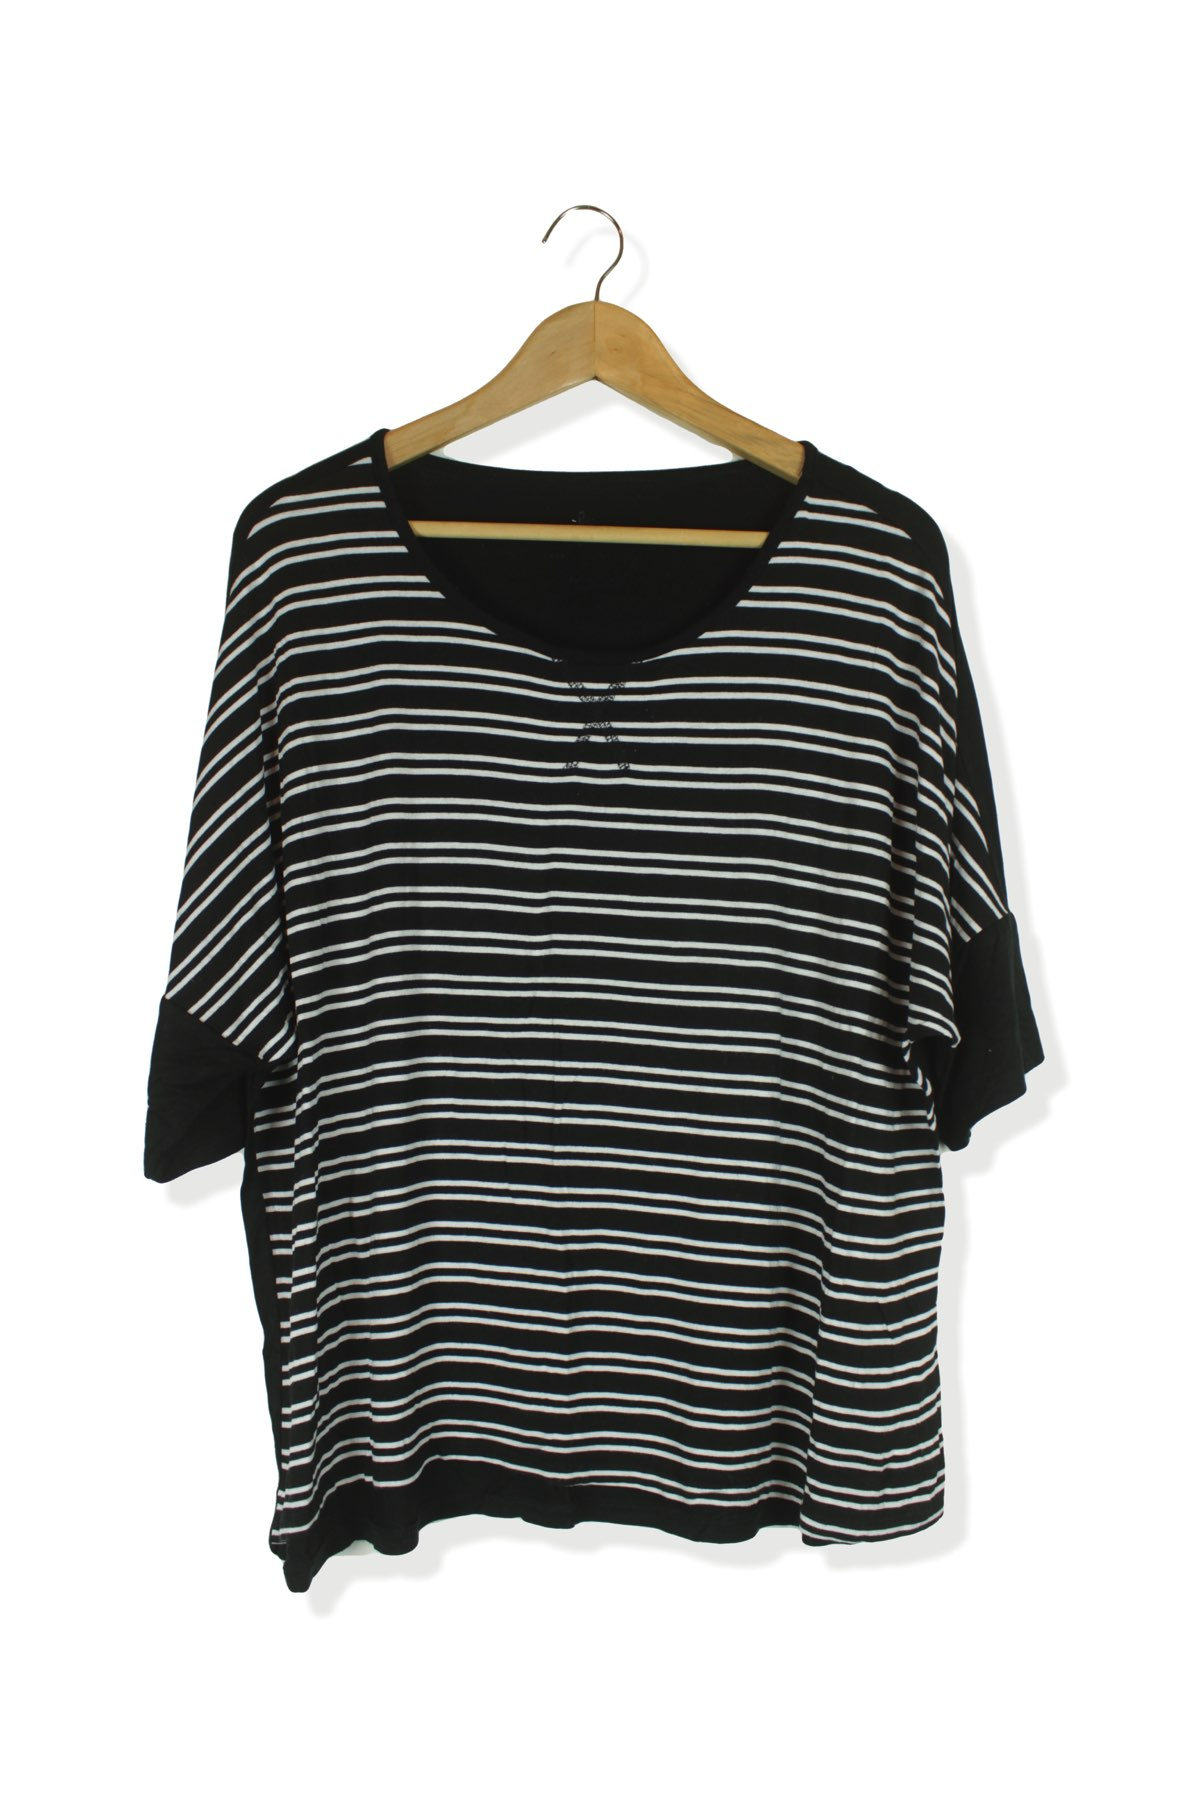 51e7b9426b2a Primark • Size Large • Women, Tops & Shirts, Second-Hand Clothing ...